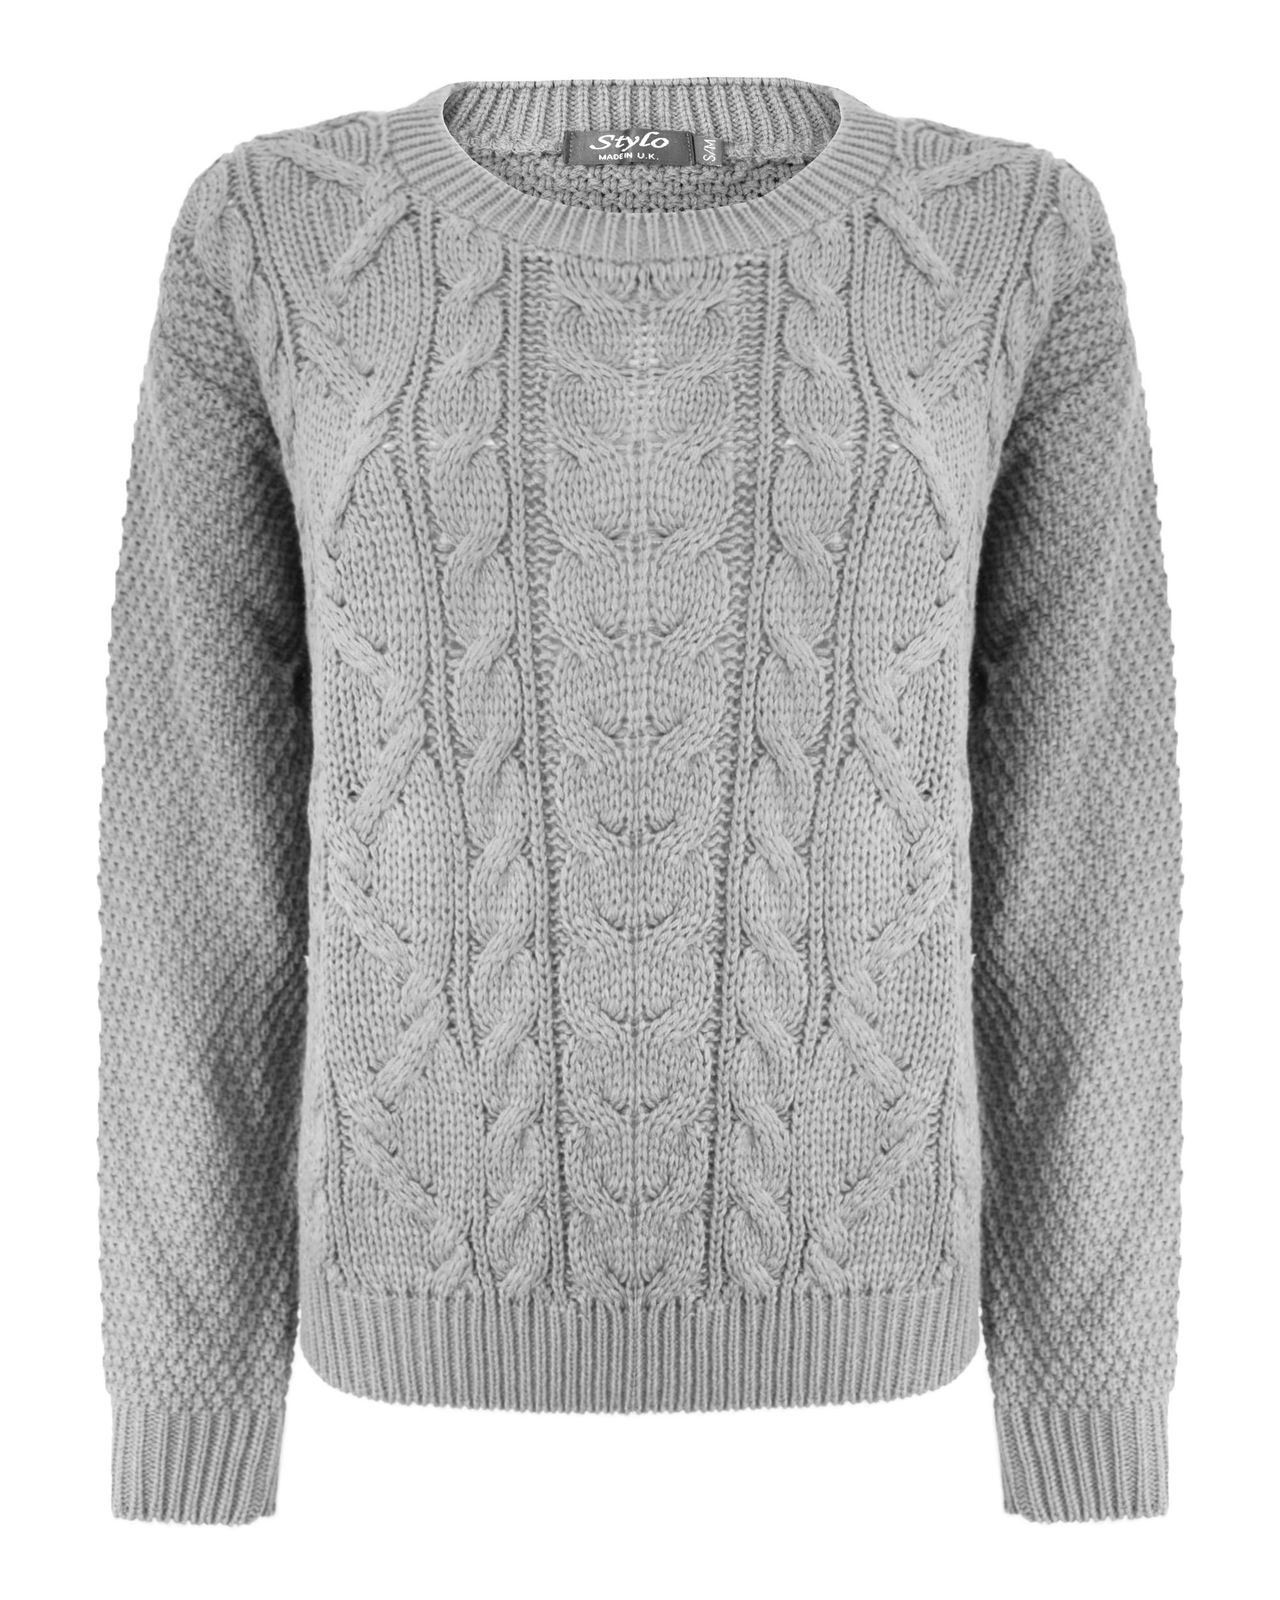 Fresh La S Women Knitted Long Sleeve Cable Knit Jumper Baggy Cable Knit Cardigan Sweater Of Wonderful 46 Models Cable Knit Cardigan Sweater